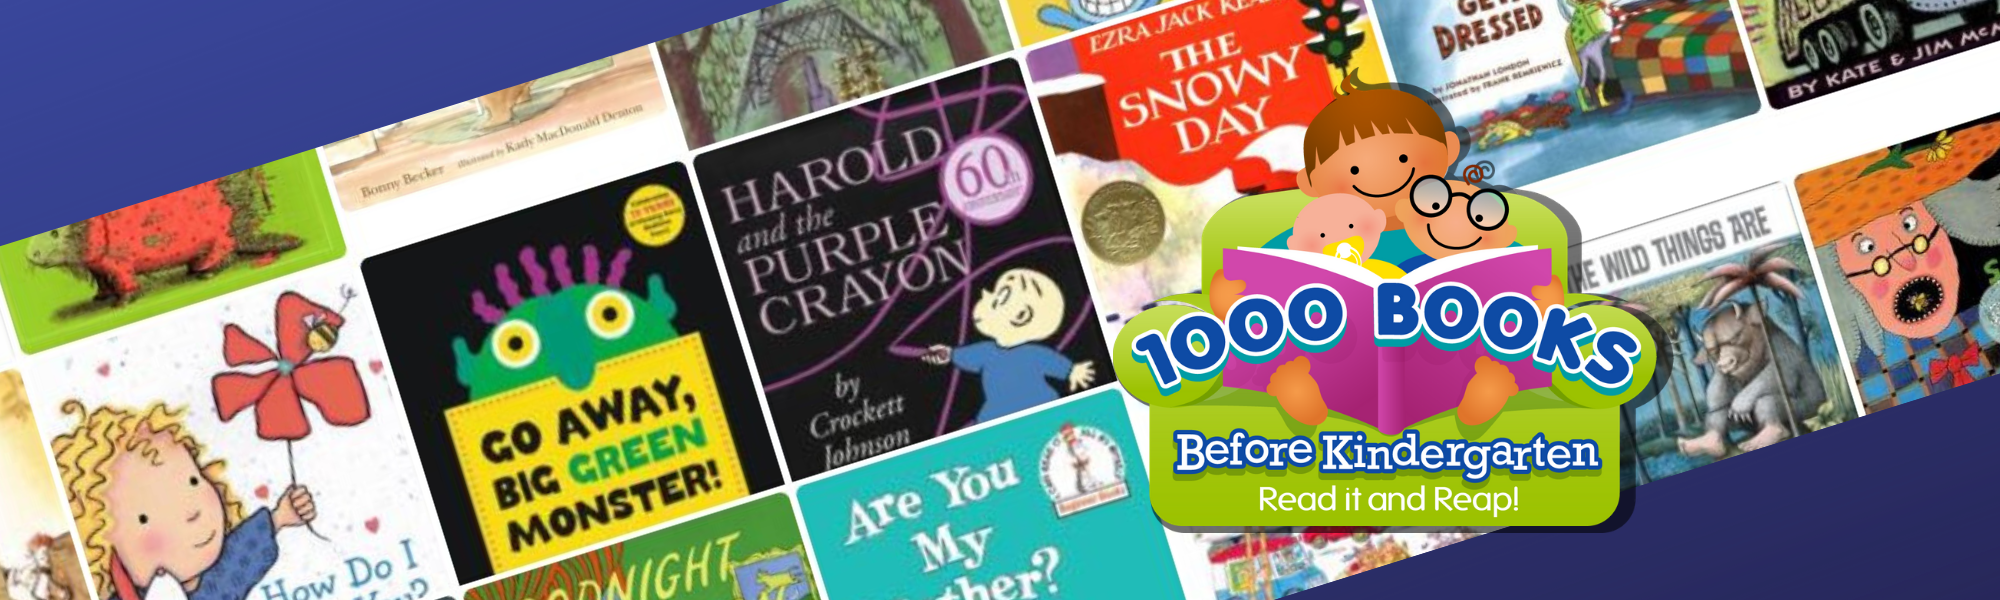 learn about 1000 books before kindergarten